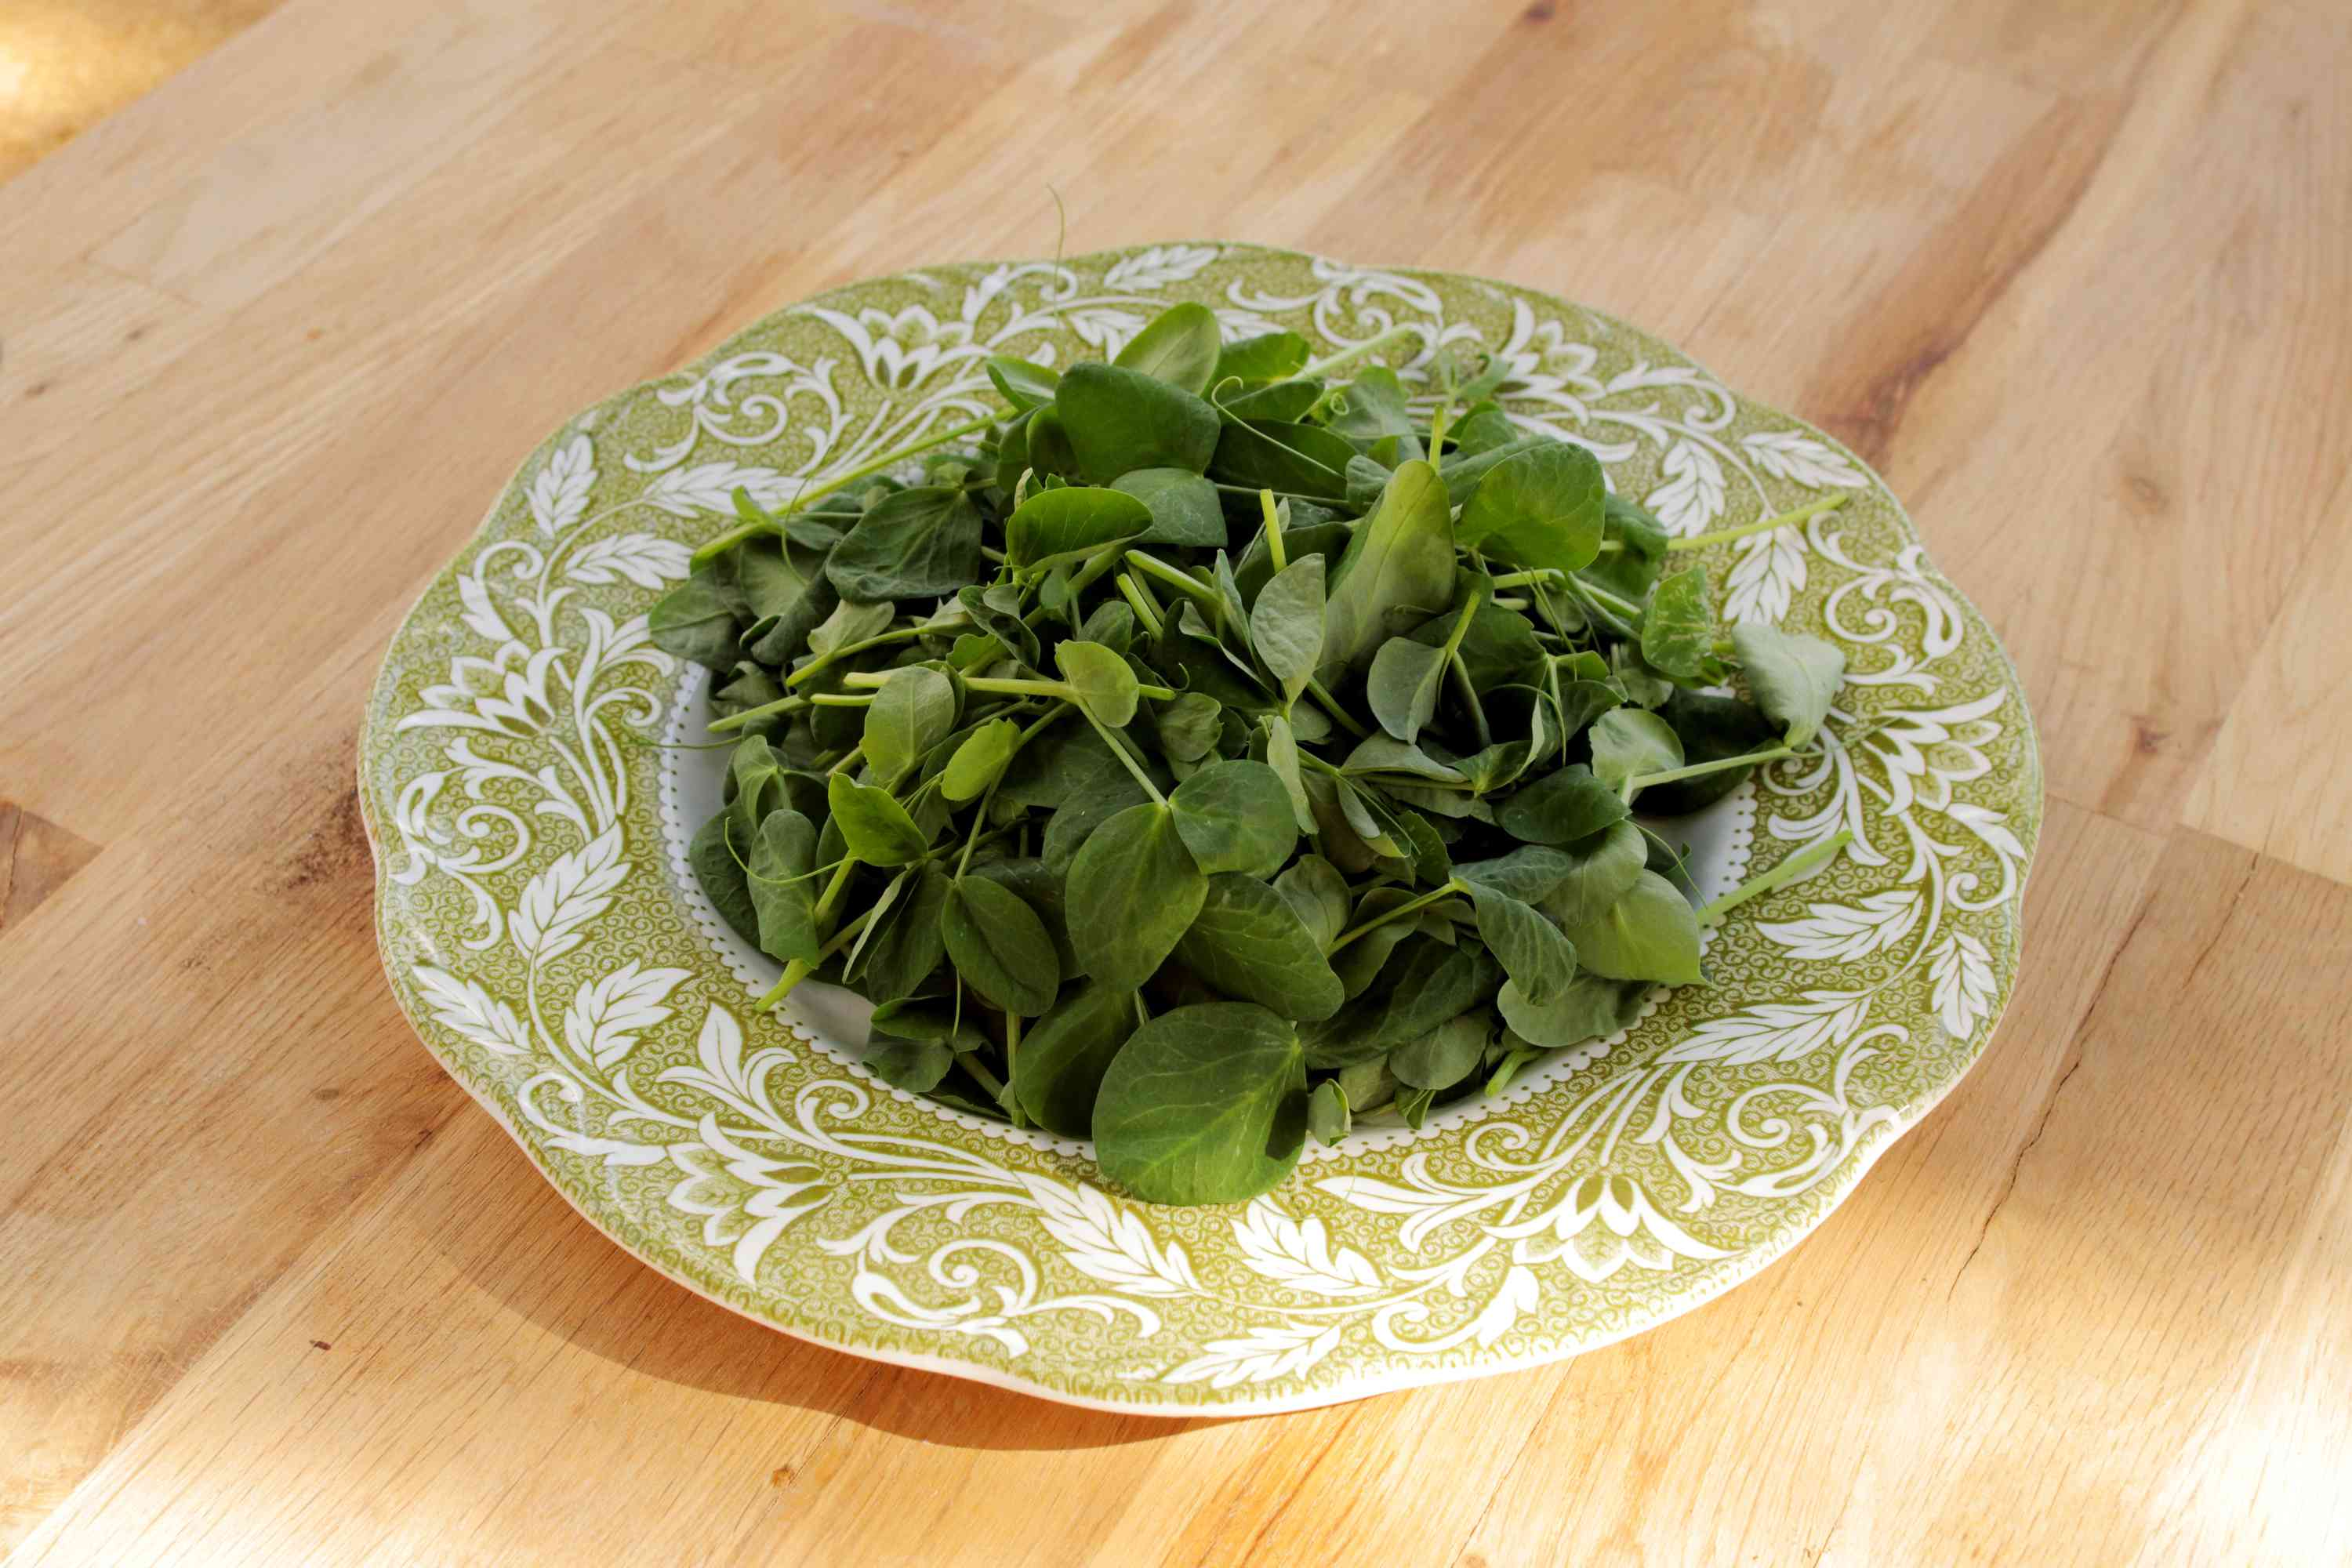 Pea shoots and tendrils inside white and green ceramic bowl on wooden surface closeup